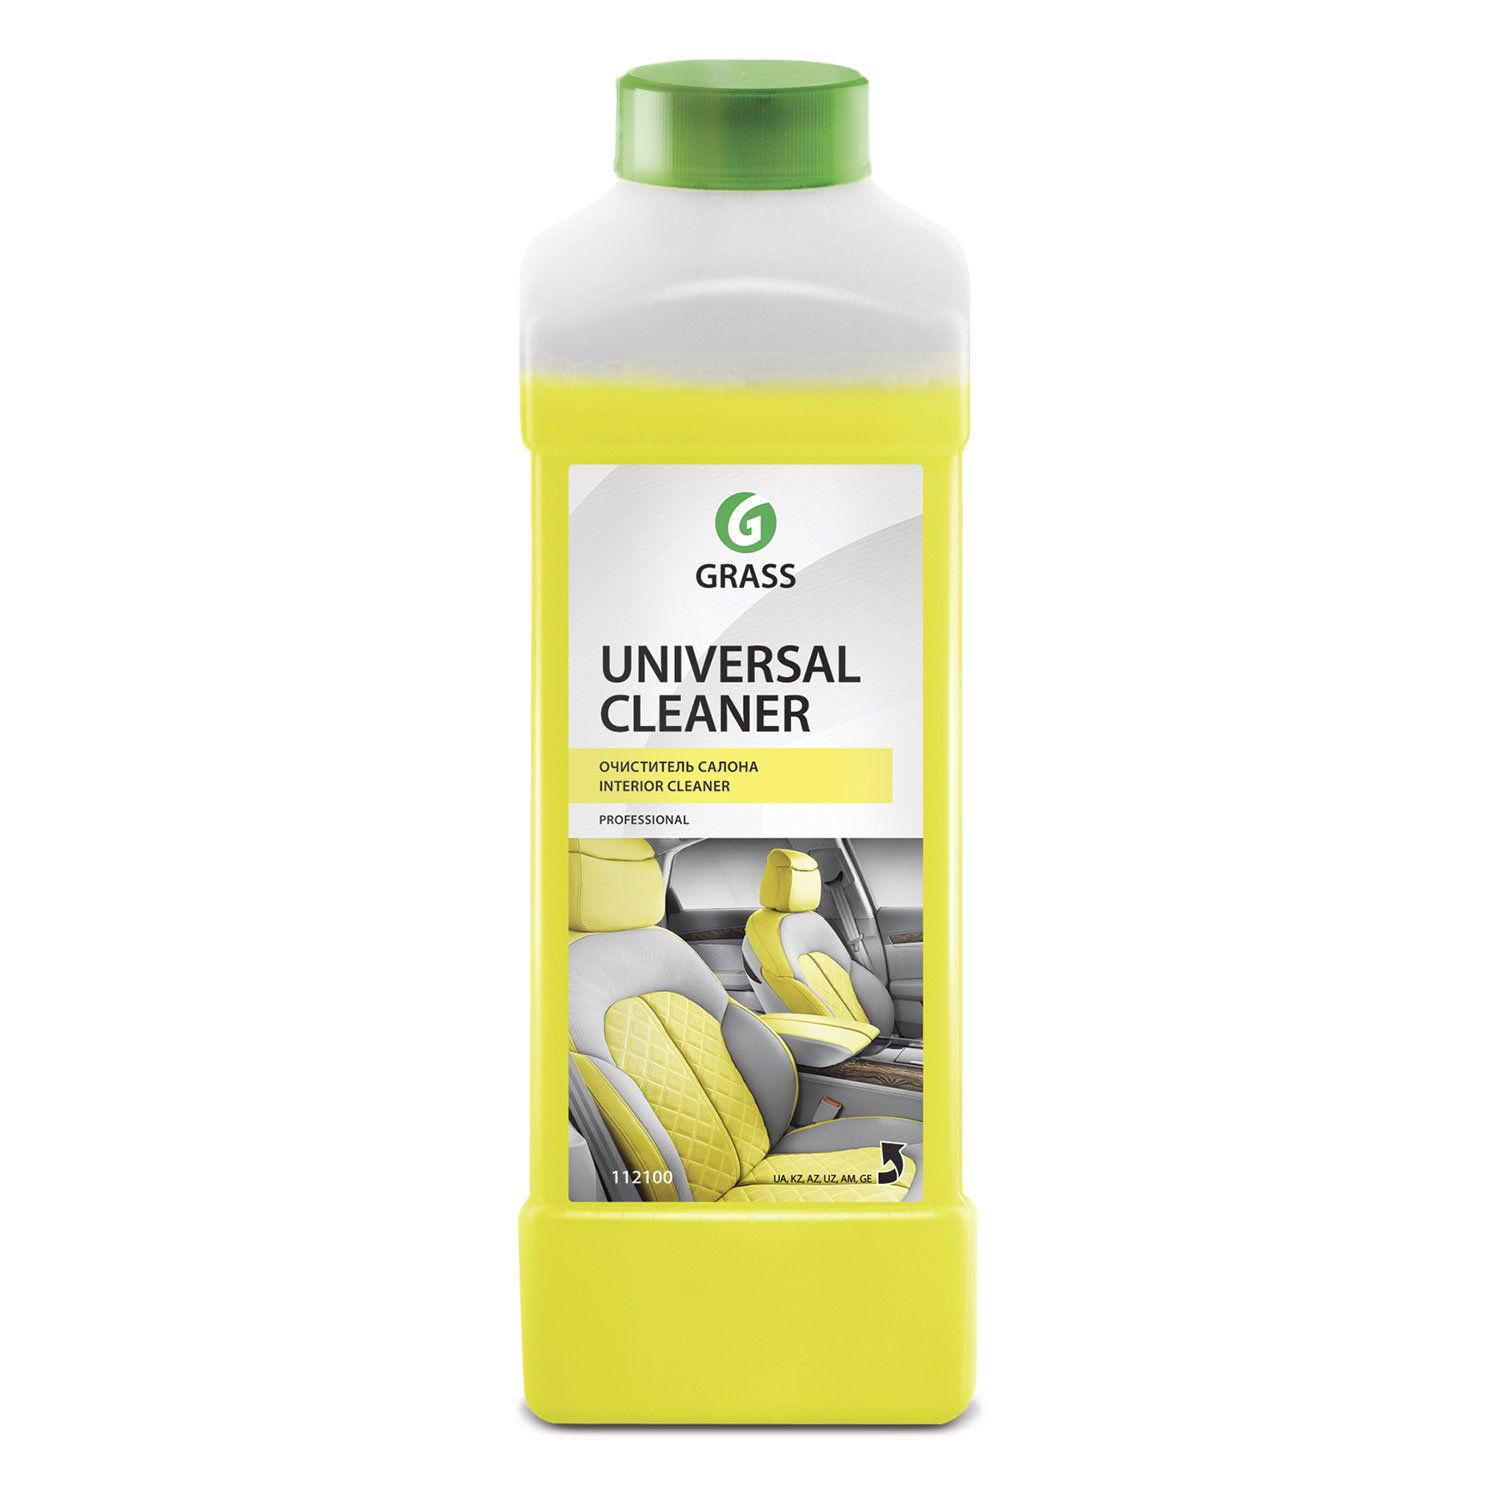 Tool for cleaning the interior GRASS 1 l UNIVERSAL CLEANER for fabric, plastic, alkaline